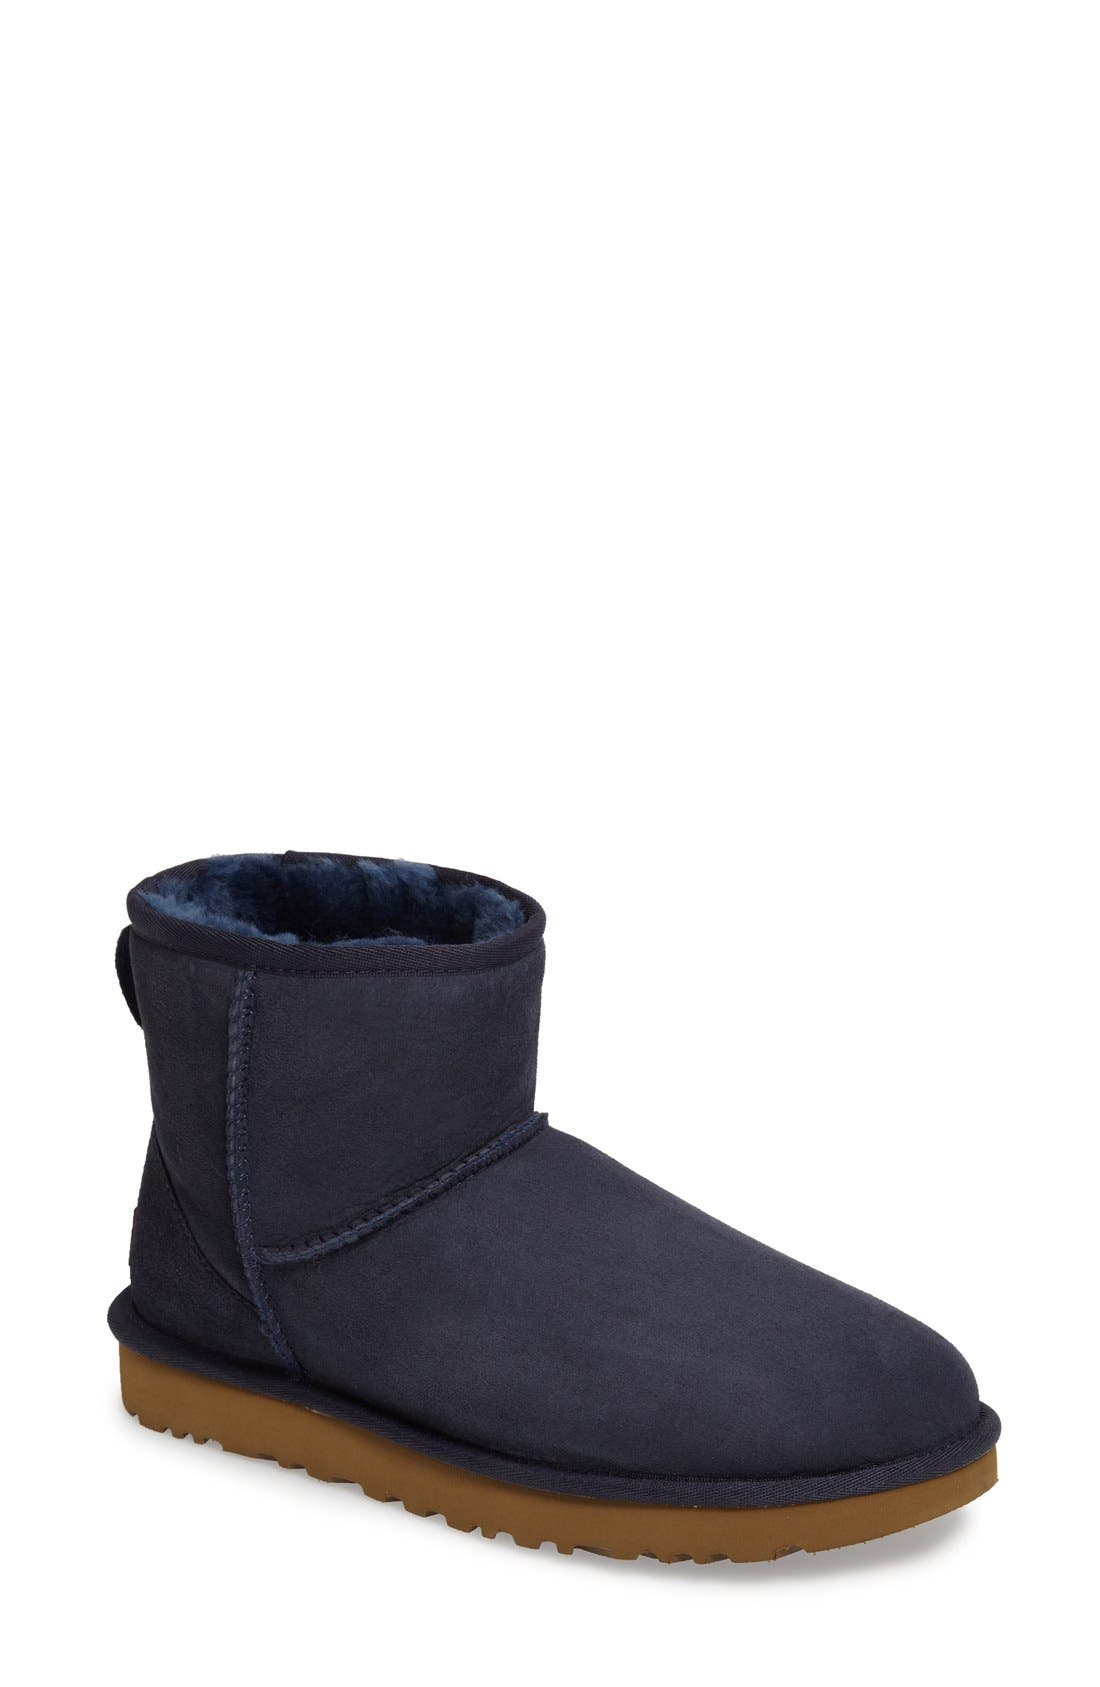 'Classic Mini II' Genuine Shearling Lined Boot,                         Main,                         color, Navy Suede